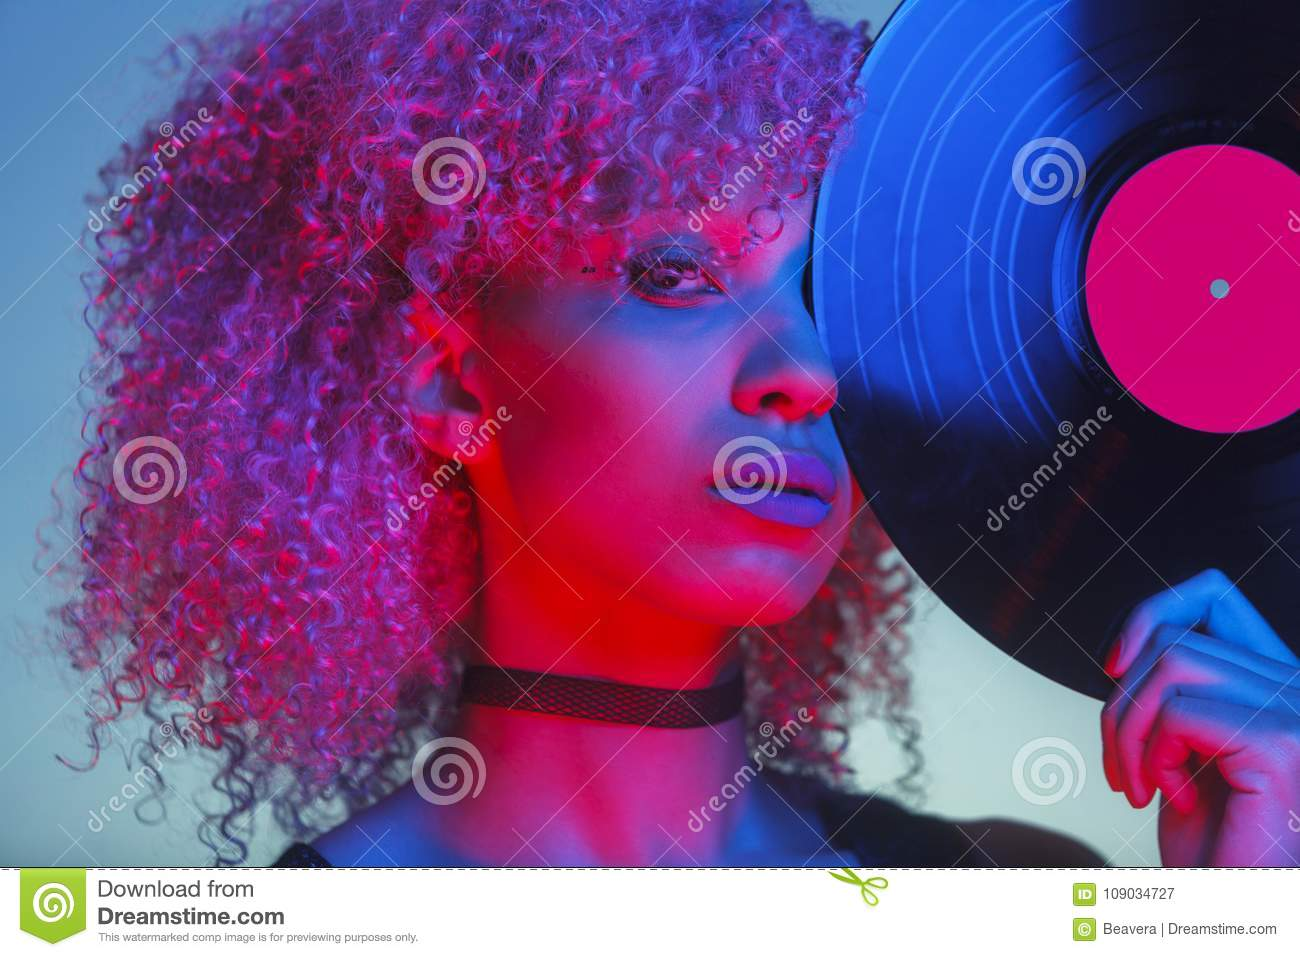 Portrait of a disco woman holding a vinyl with eighties music an